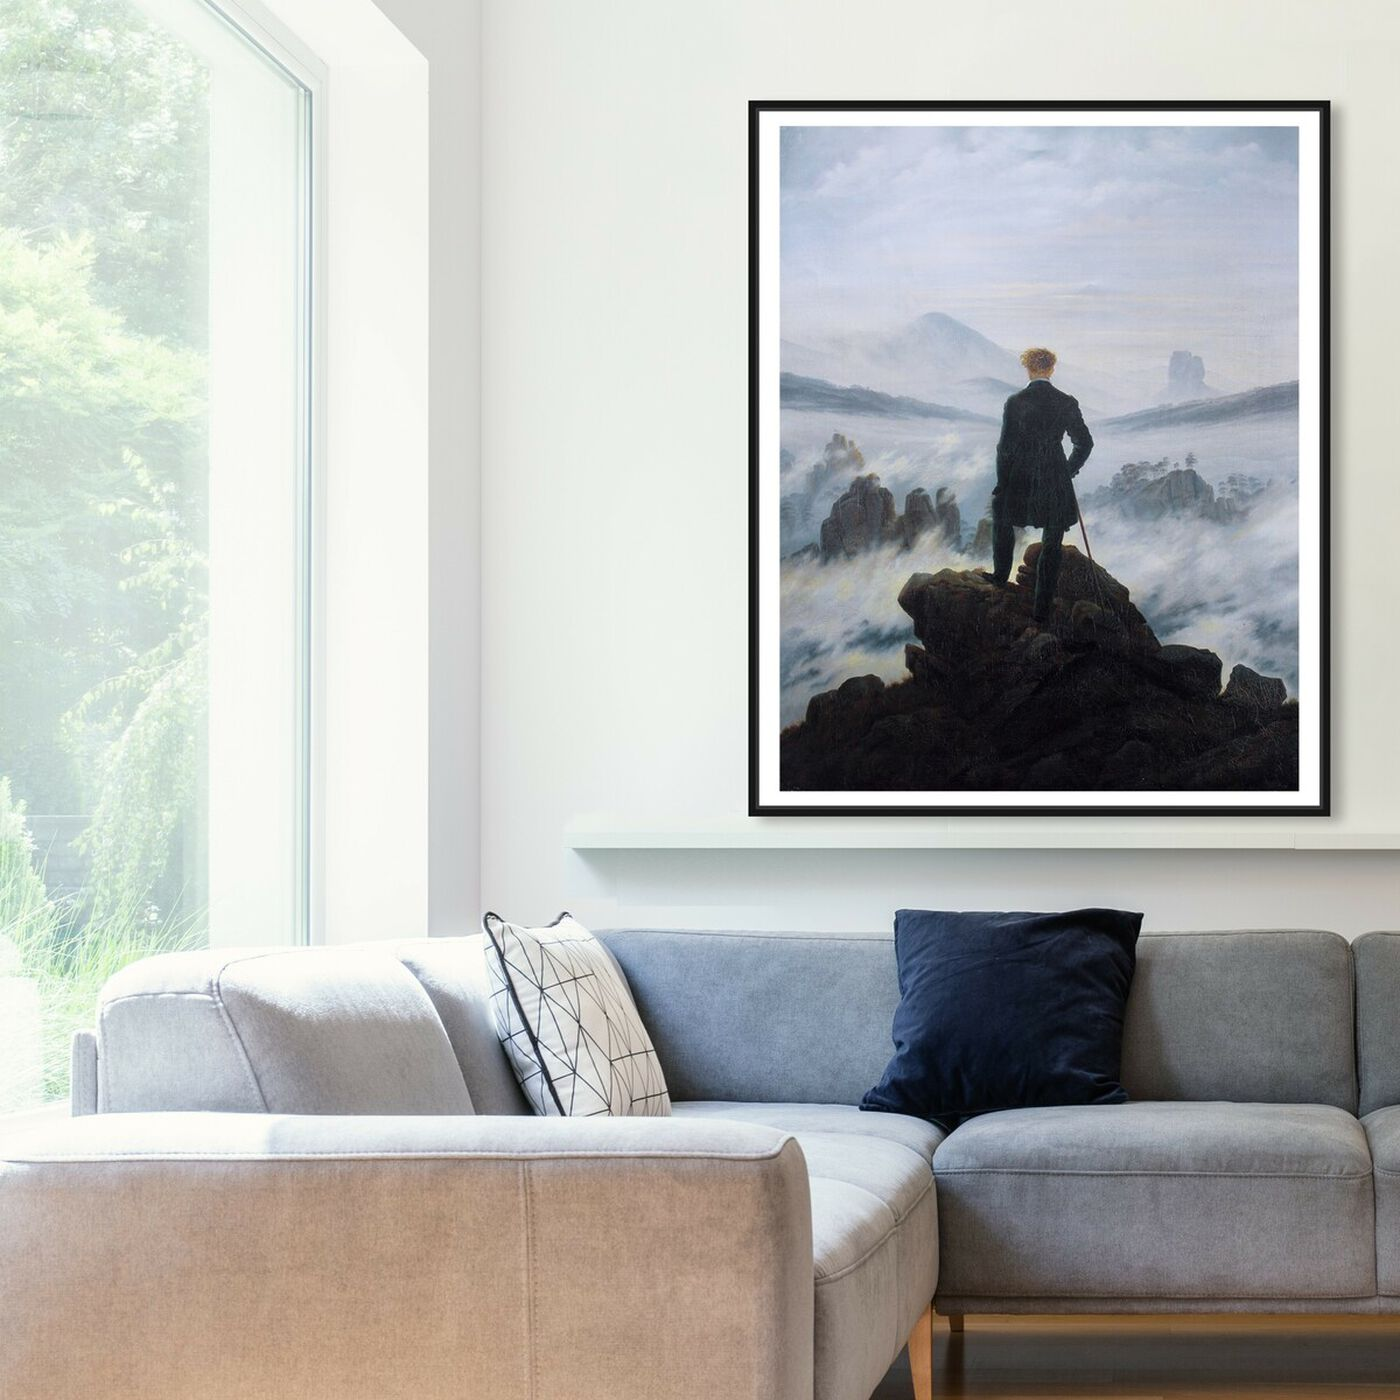 Hanging view of Friedrich - The Wanderer featuring classic and figurative and classical figures art.